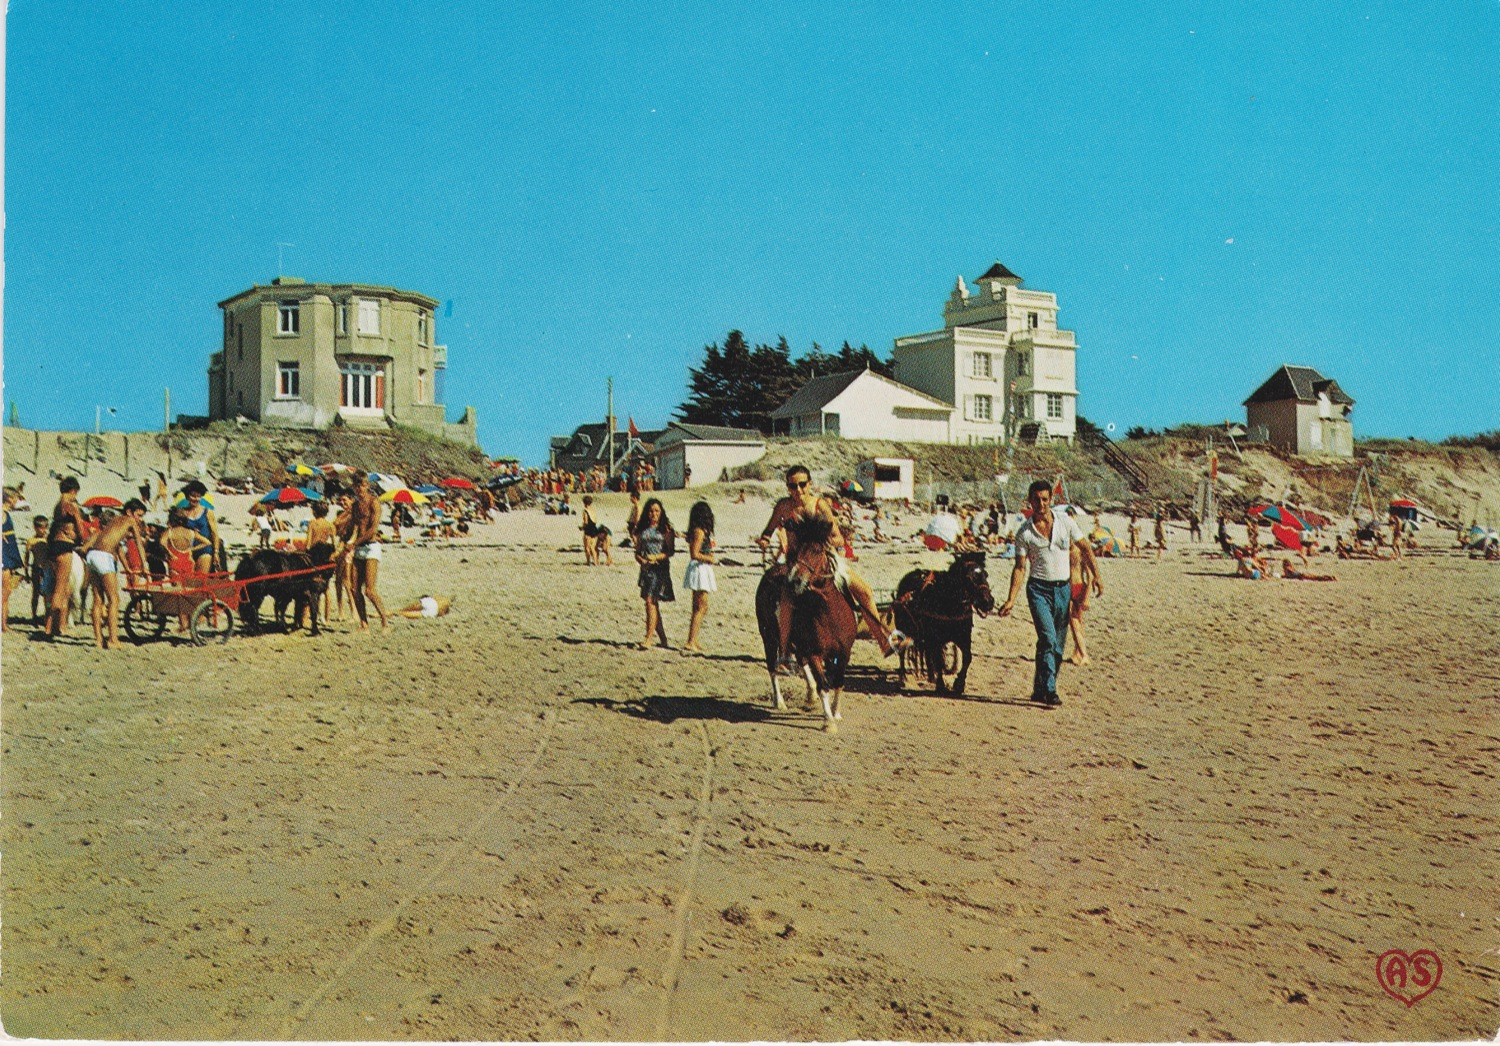 1970 St Martin Plage 5 © collection Jean Claude Ferret